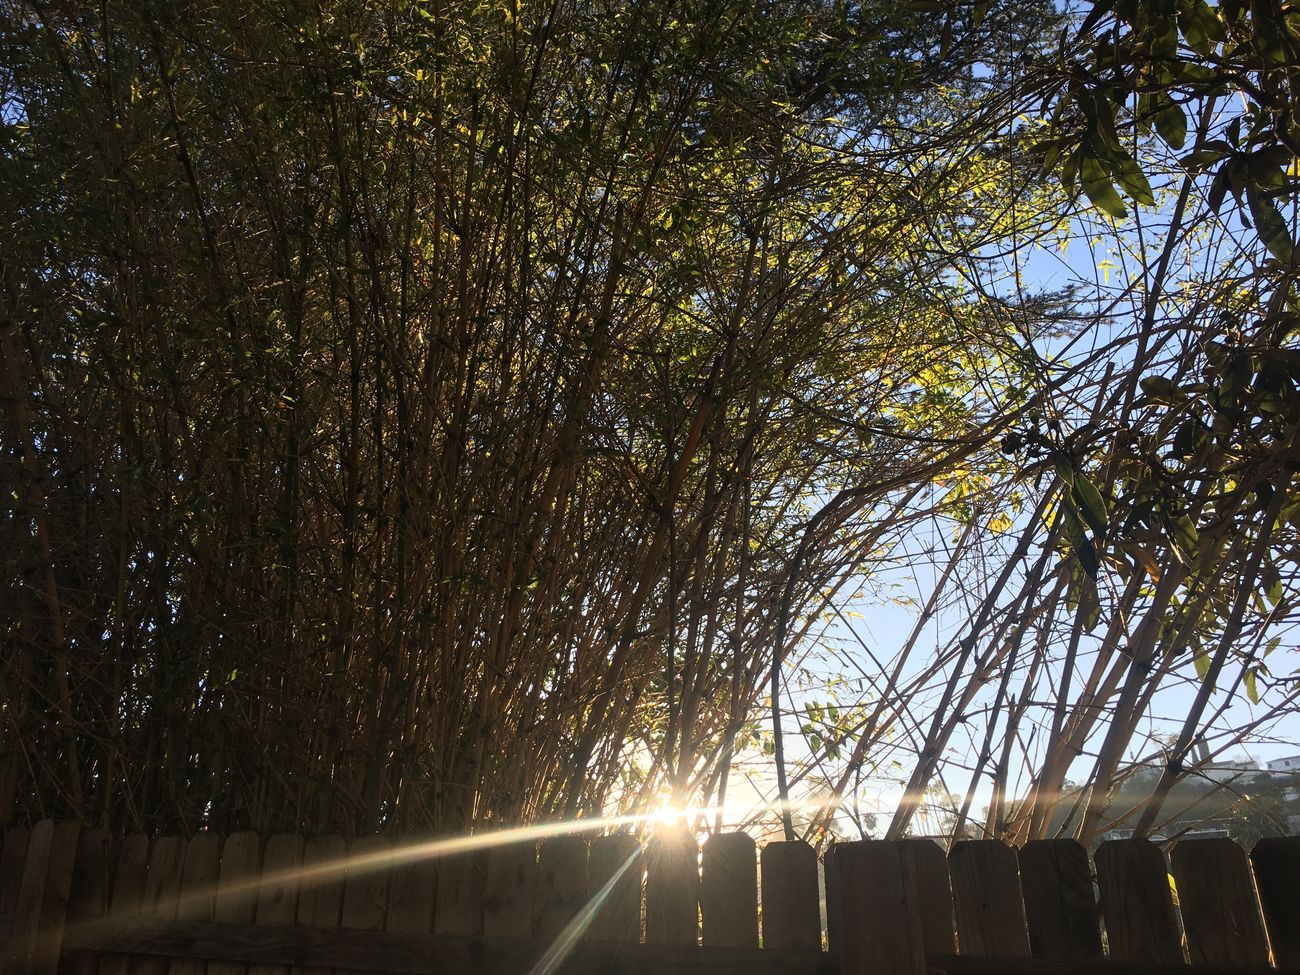 Tree Nature No People Road The Way Forward Growth Transportation Outdoors Beauty In Nature Scenics Bamboo Bamboo Grove California Sunbeam Sun Lens Flare Sunlight Golden Hour California Dreaming Tranquility Tranquil Scene Green Plants Sky Day